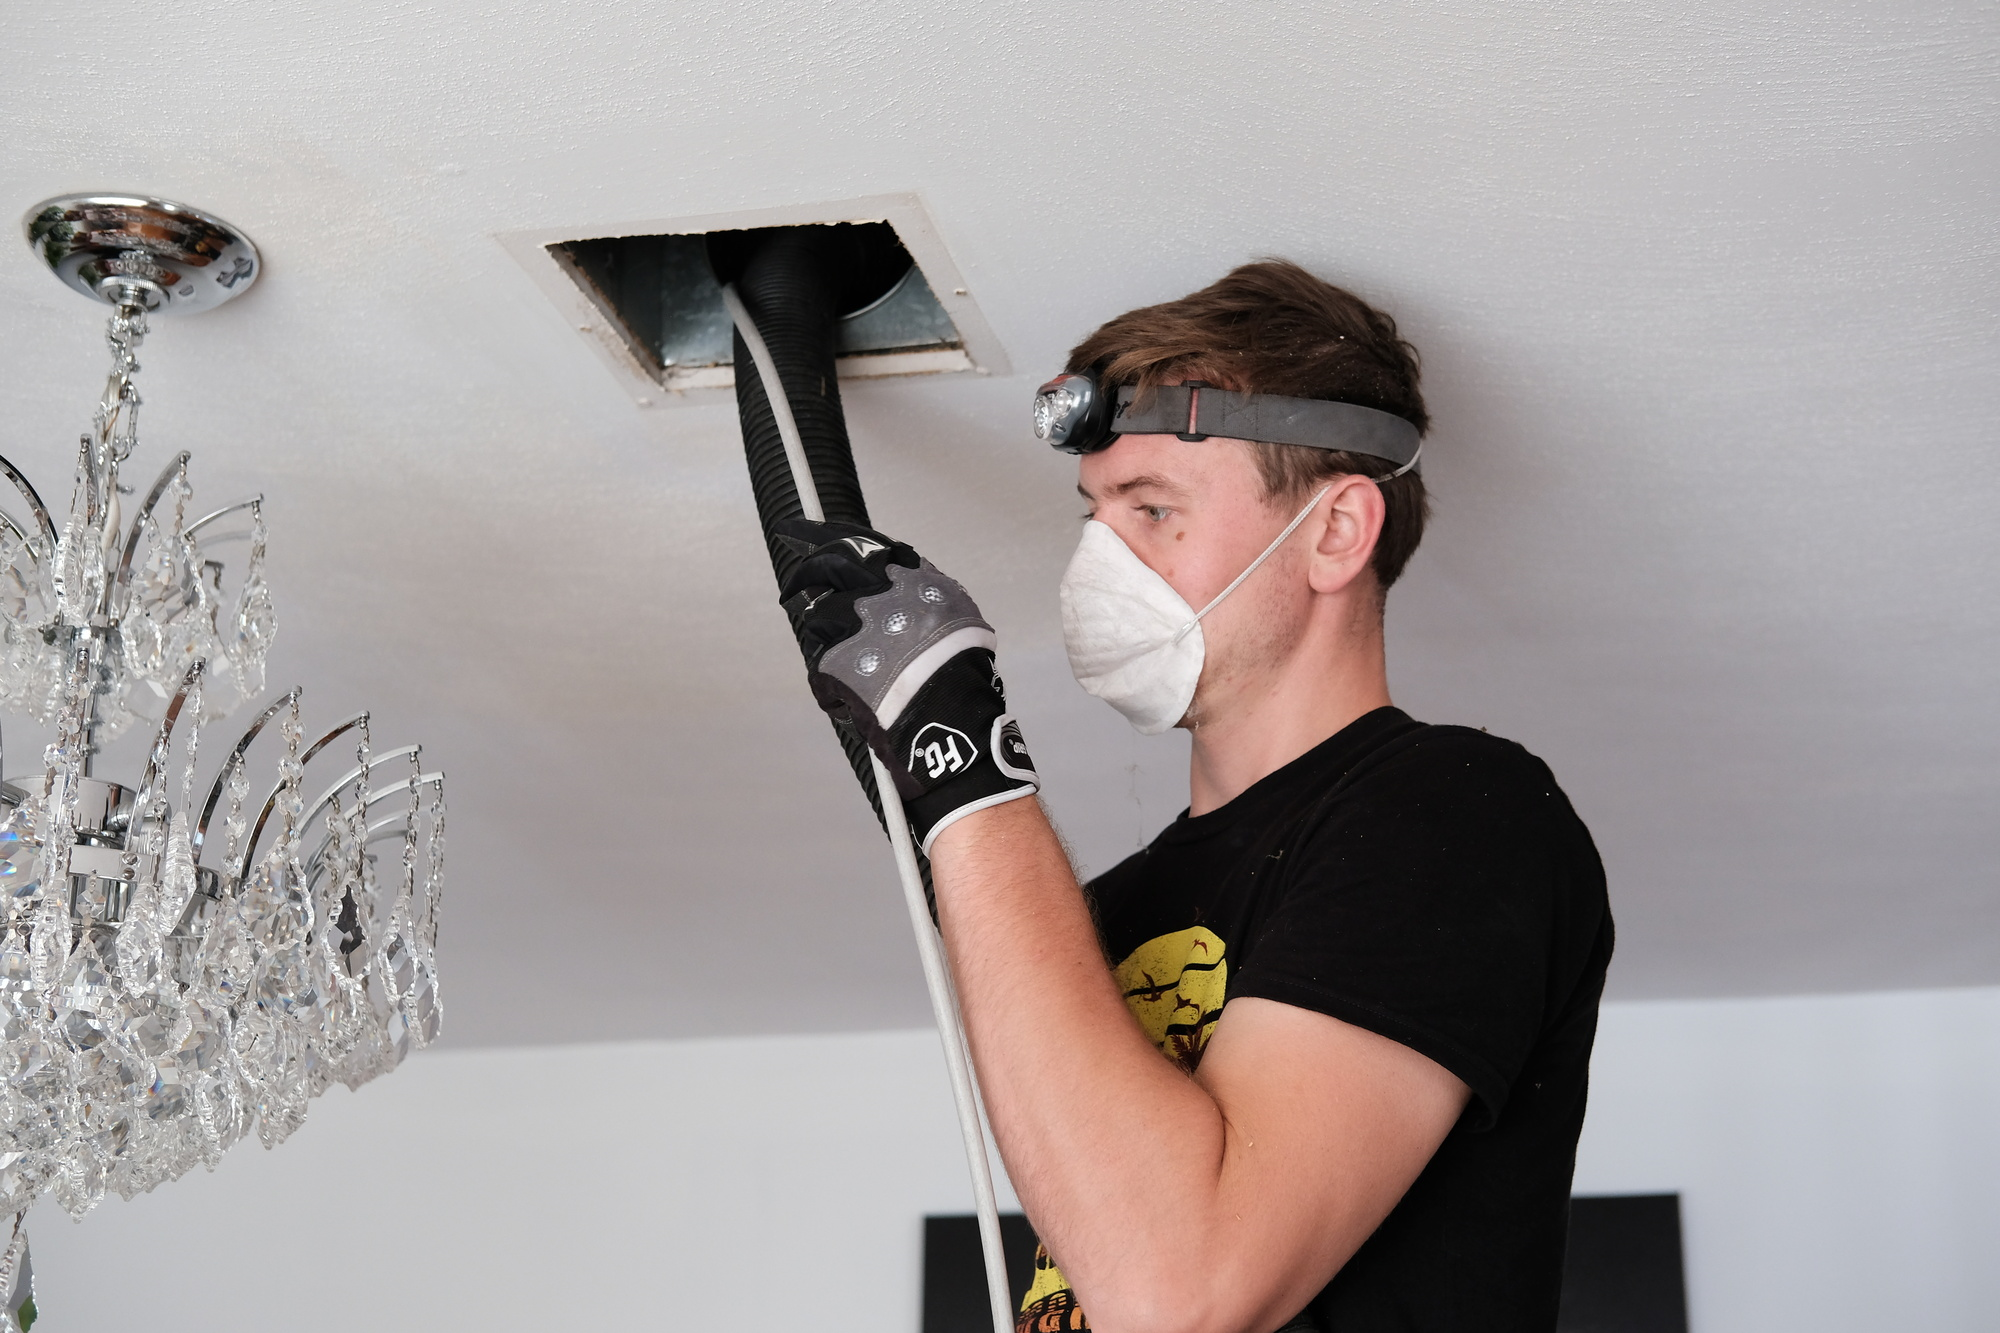 man cleaning air ducts